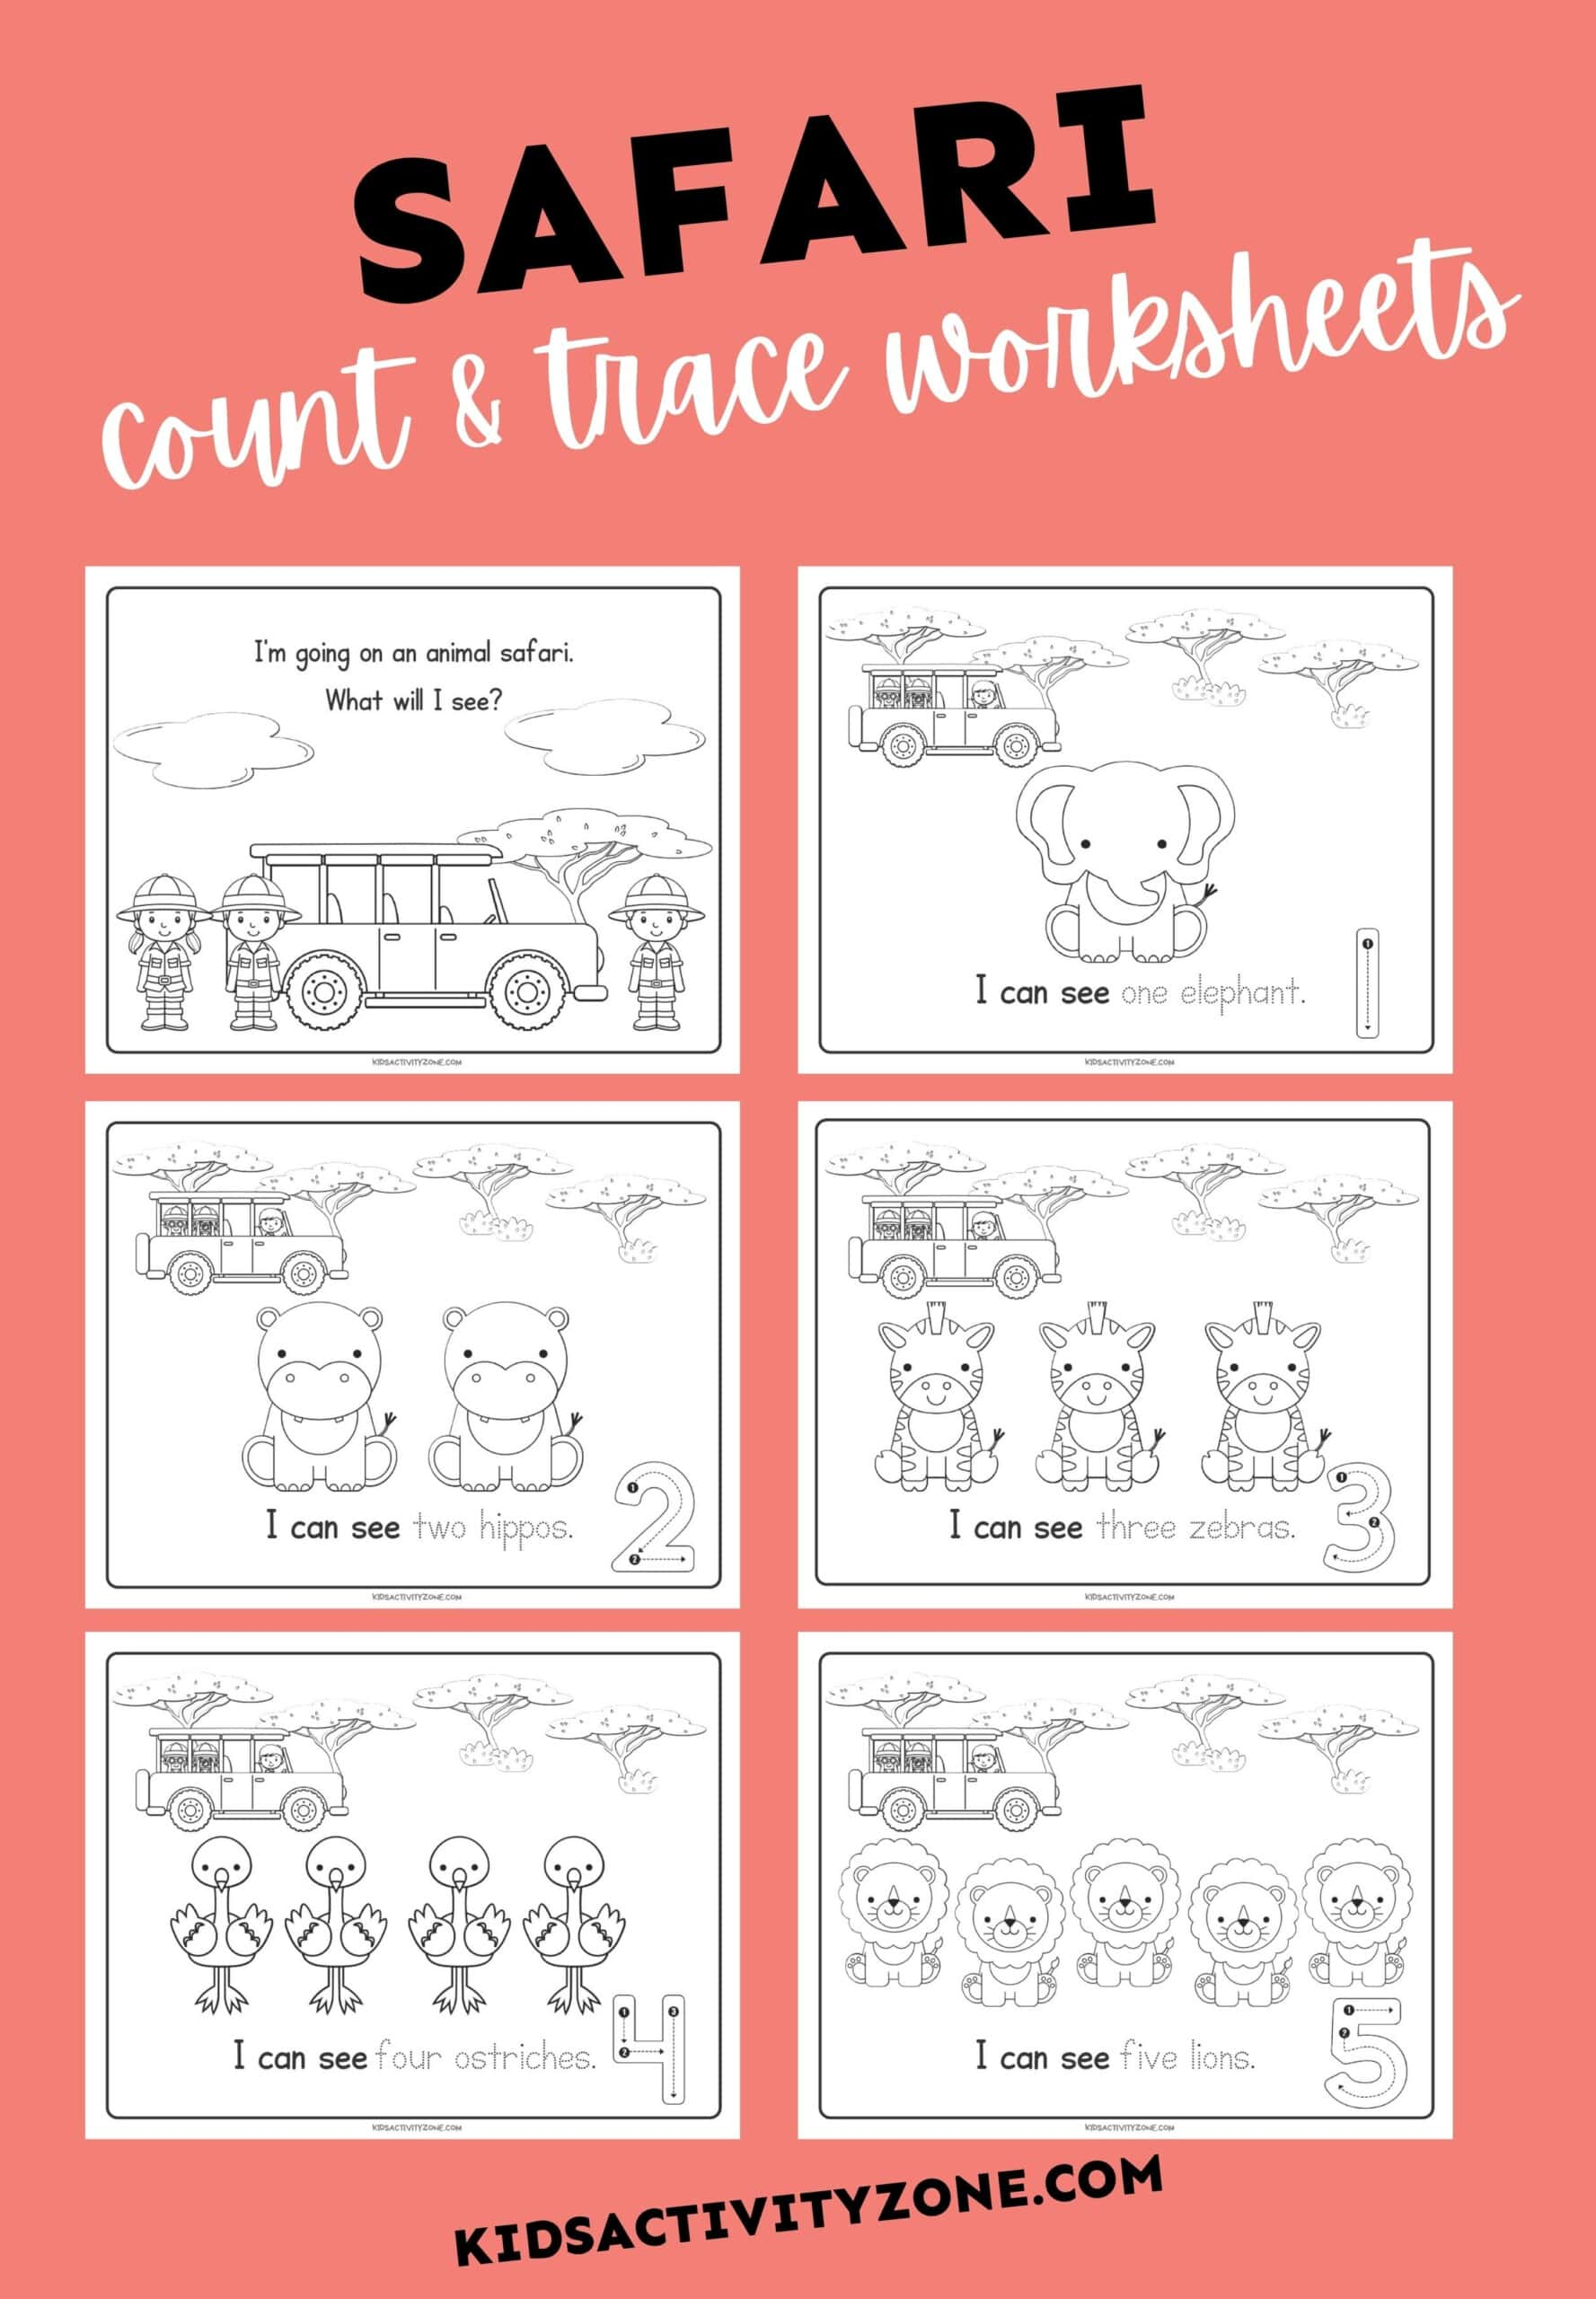 Safari Count & Trace Worksheets - Featured Image